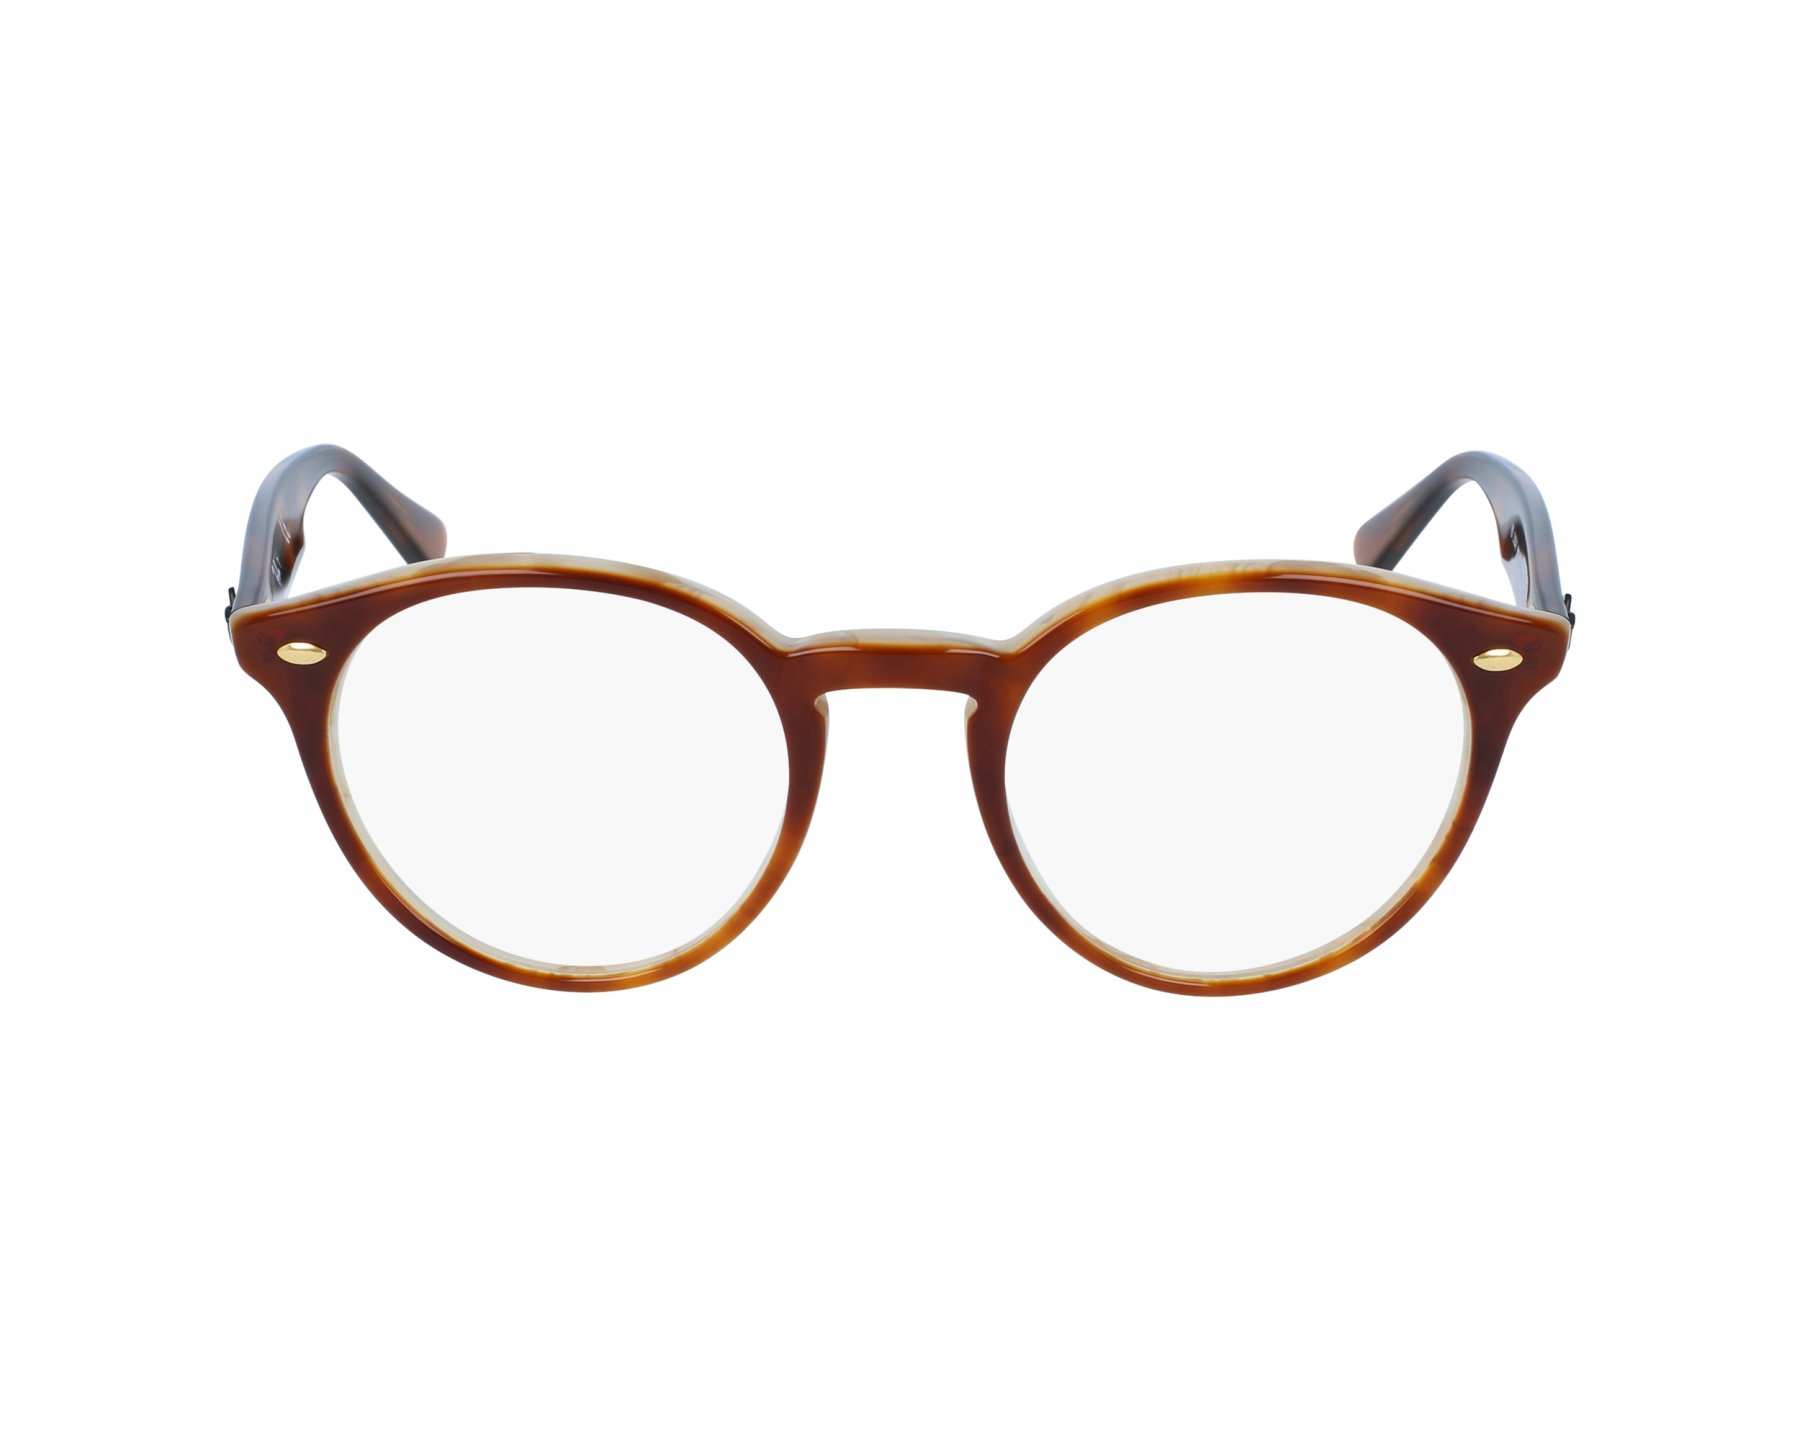 d862567a06 ... new zealand eyeglasses ray ban rx 2180 v 5677 47 21 brown havana  profile c95a0 b3342